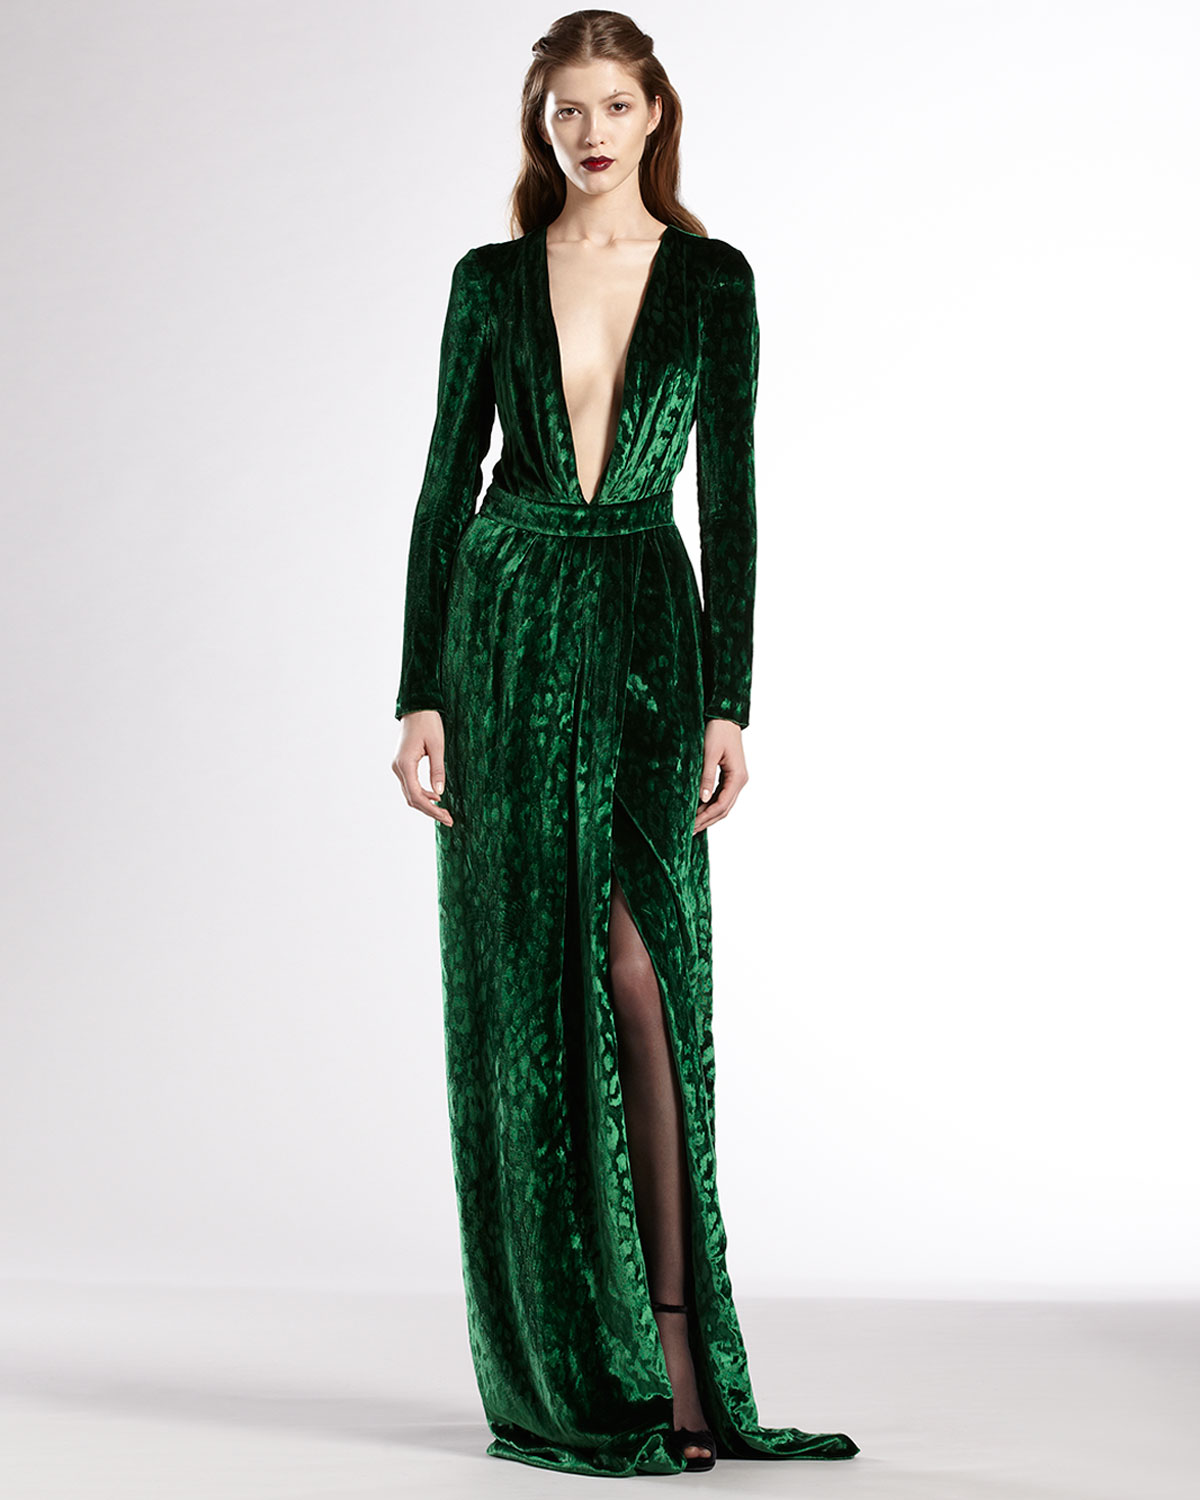 894c85e82a21a Gucci Velvet Deep Vneck Gown in Green - Lyst